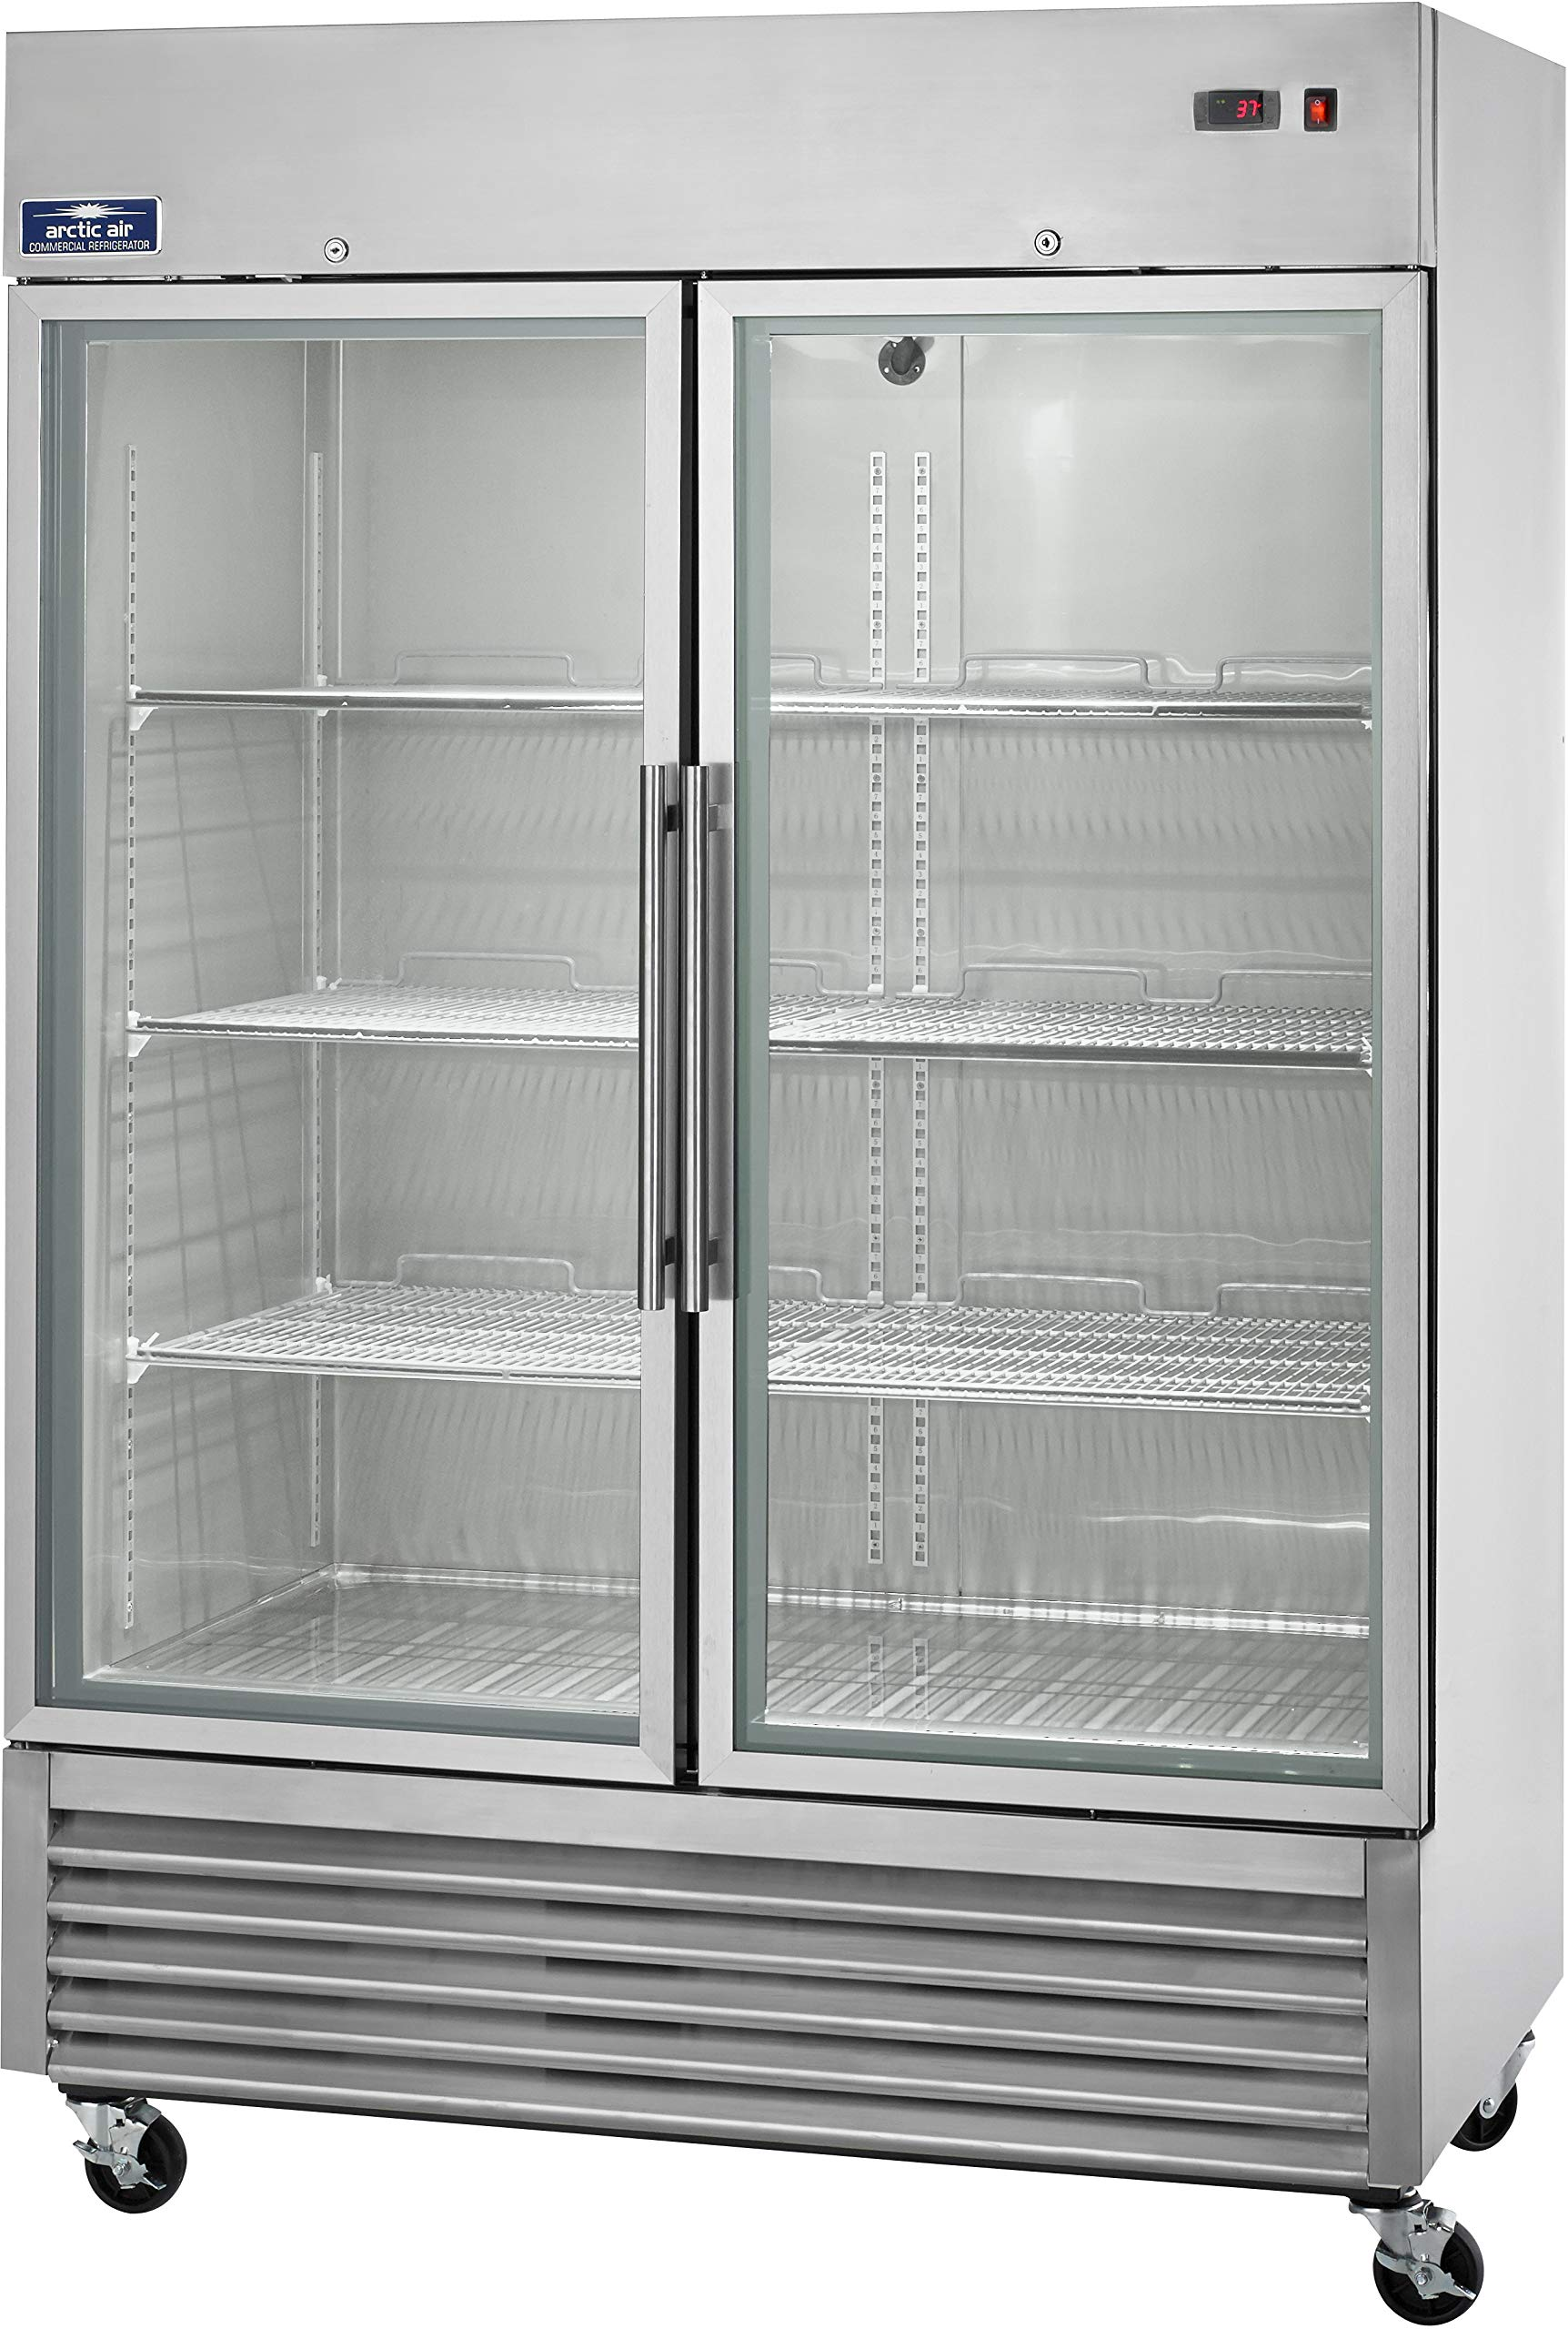 Arctic Air AGR49 Two Door Glass Reach-in Refrigerators, 2 Doors 6 Shelves, 33DF to 41DF, 49 cu. ft, Stainless Steel by Arctic Air